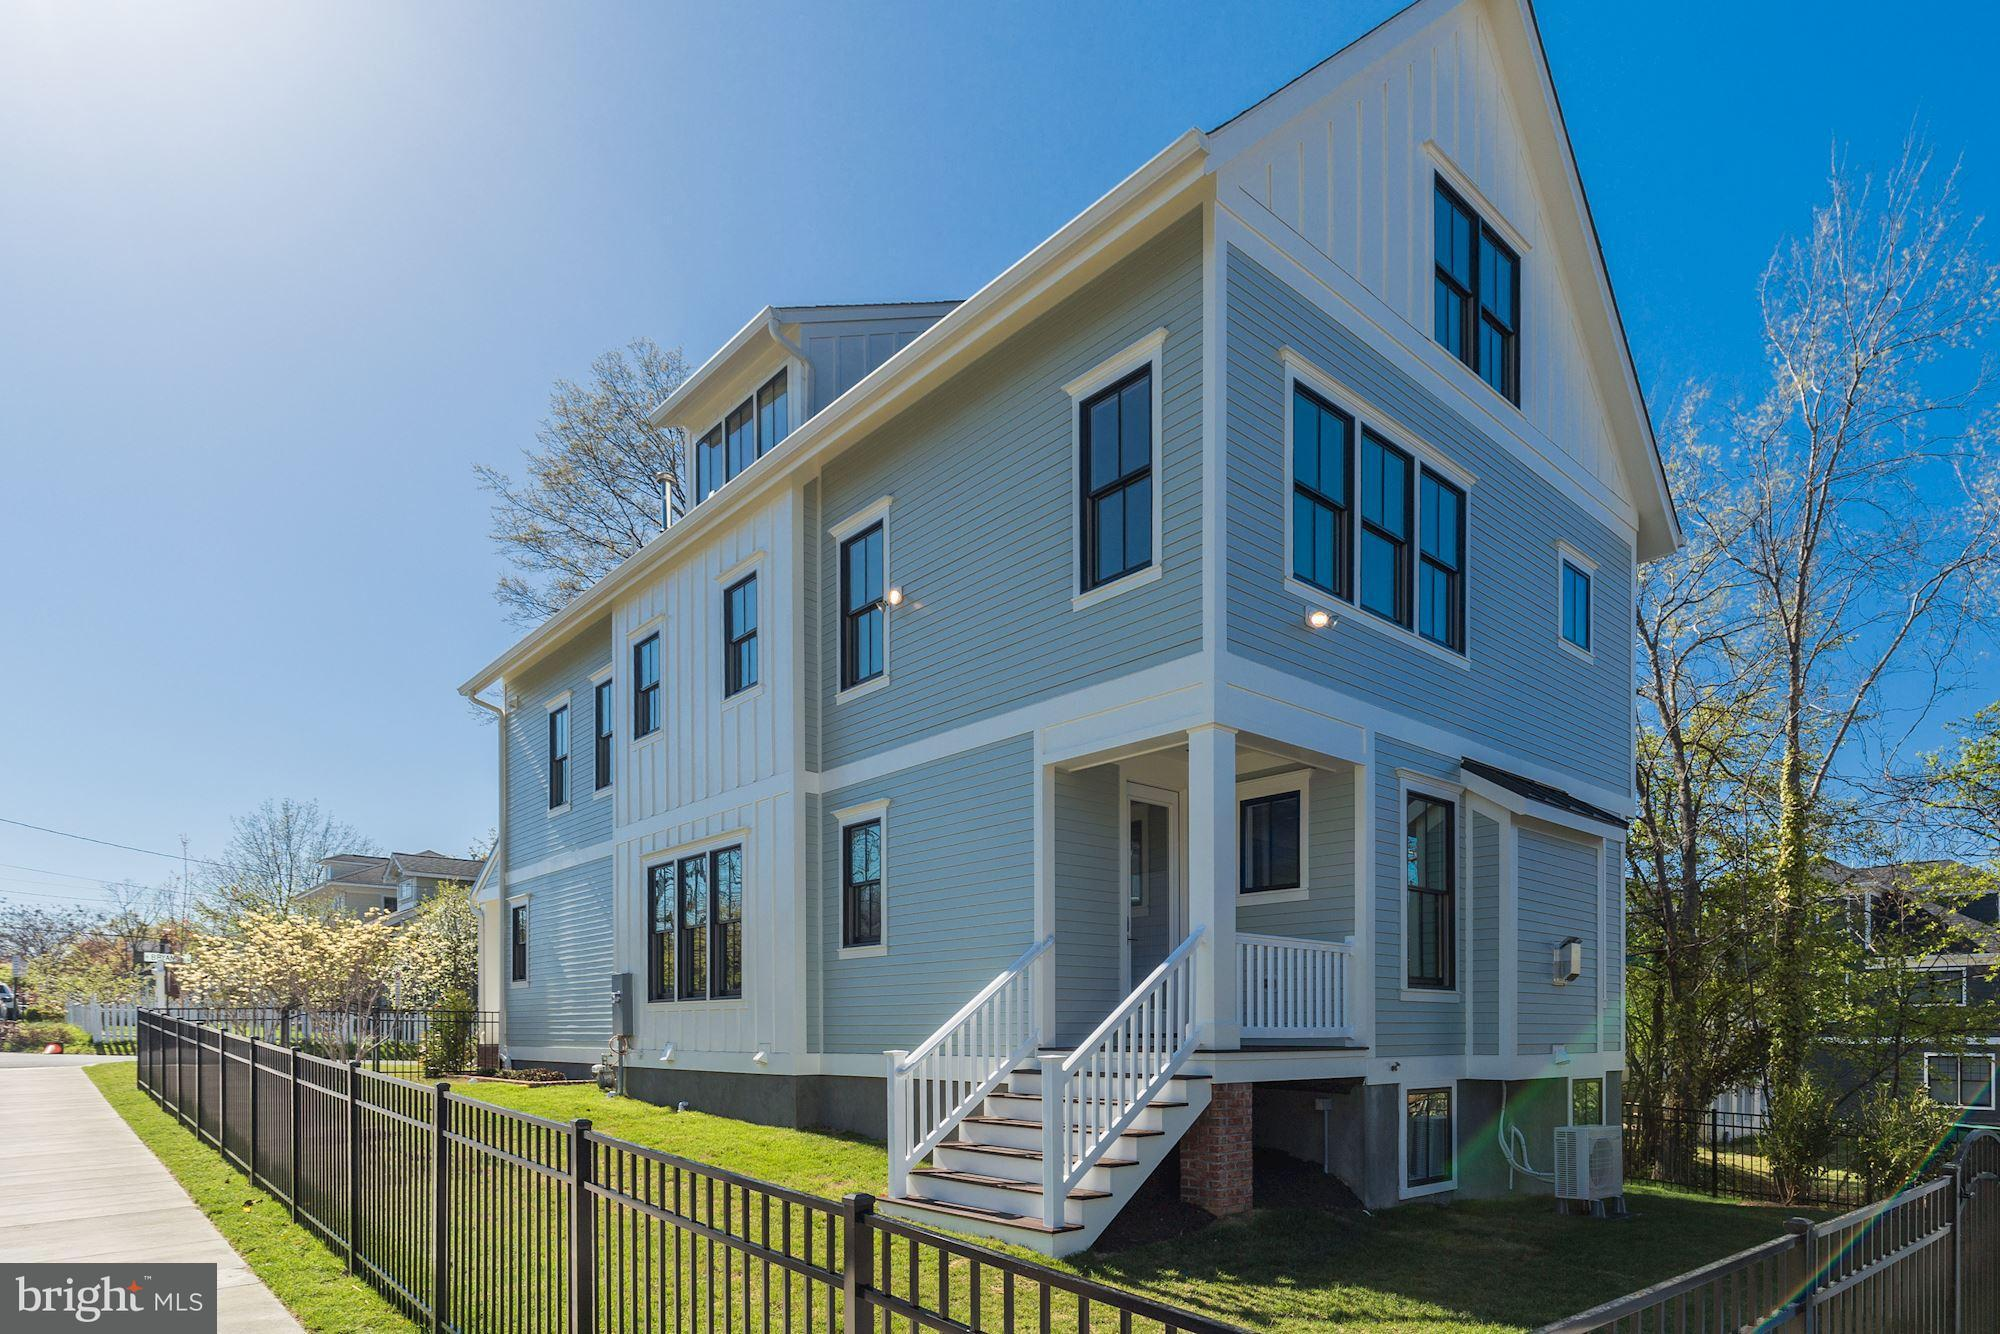 1801 BRYAN STREET N, Arlington, VA, 22201 | RE/MAX Enterprise